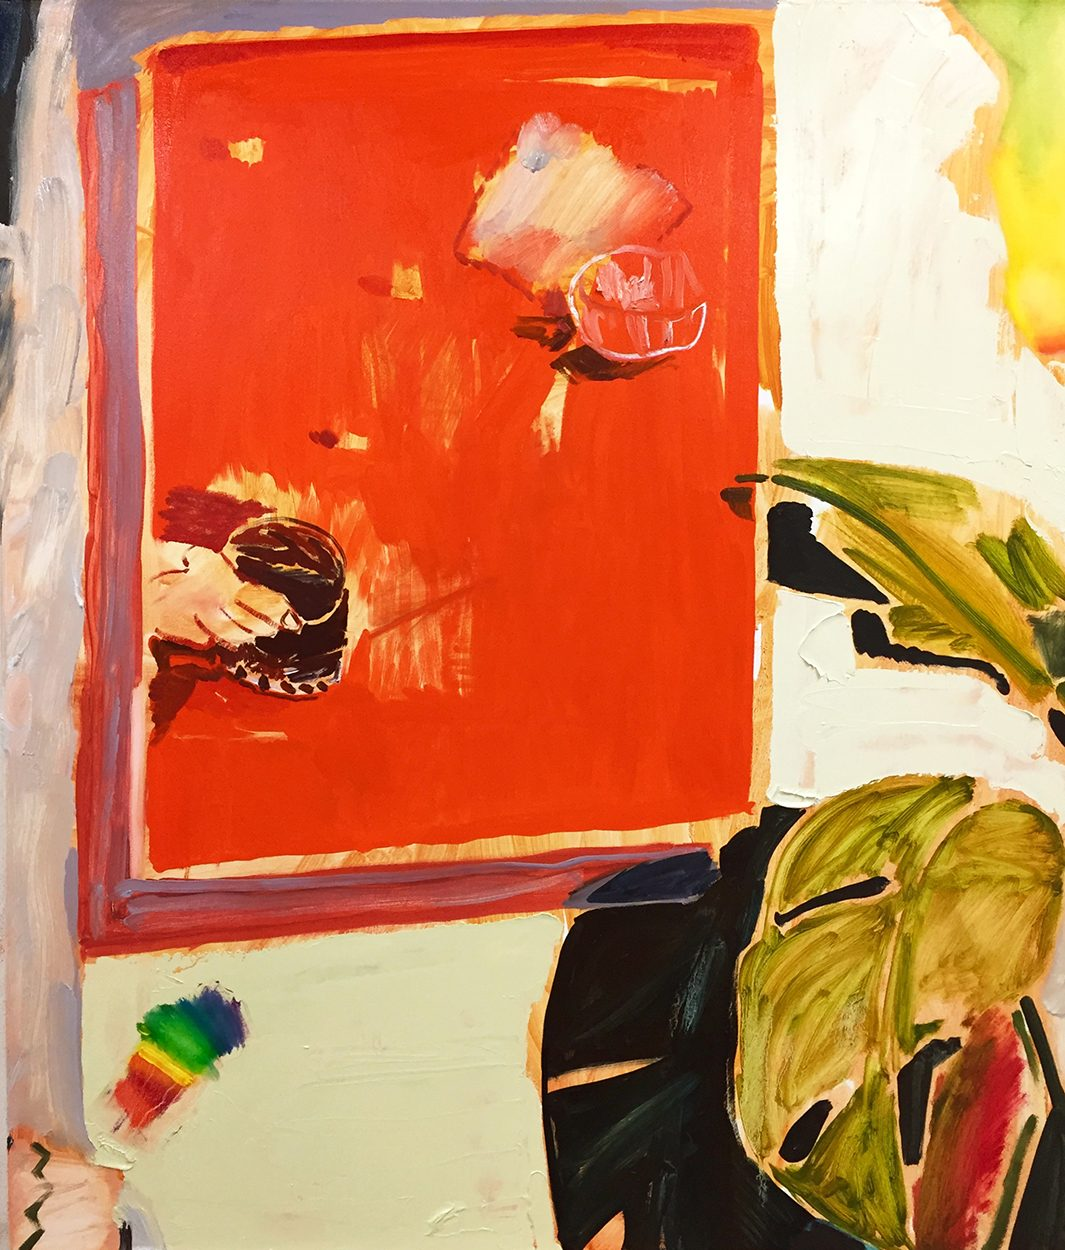 A painting of a wall with a red painting on the wall. Two large leaves are to the right of the painting and a spectrum of color is beneath the painting.